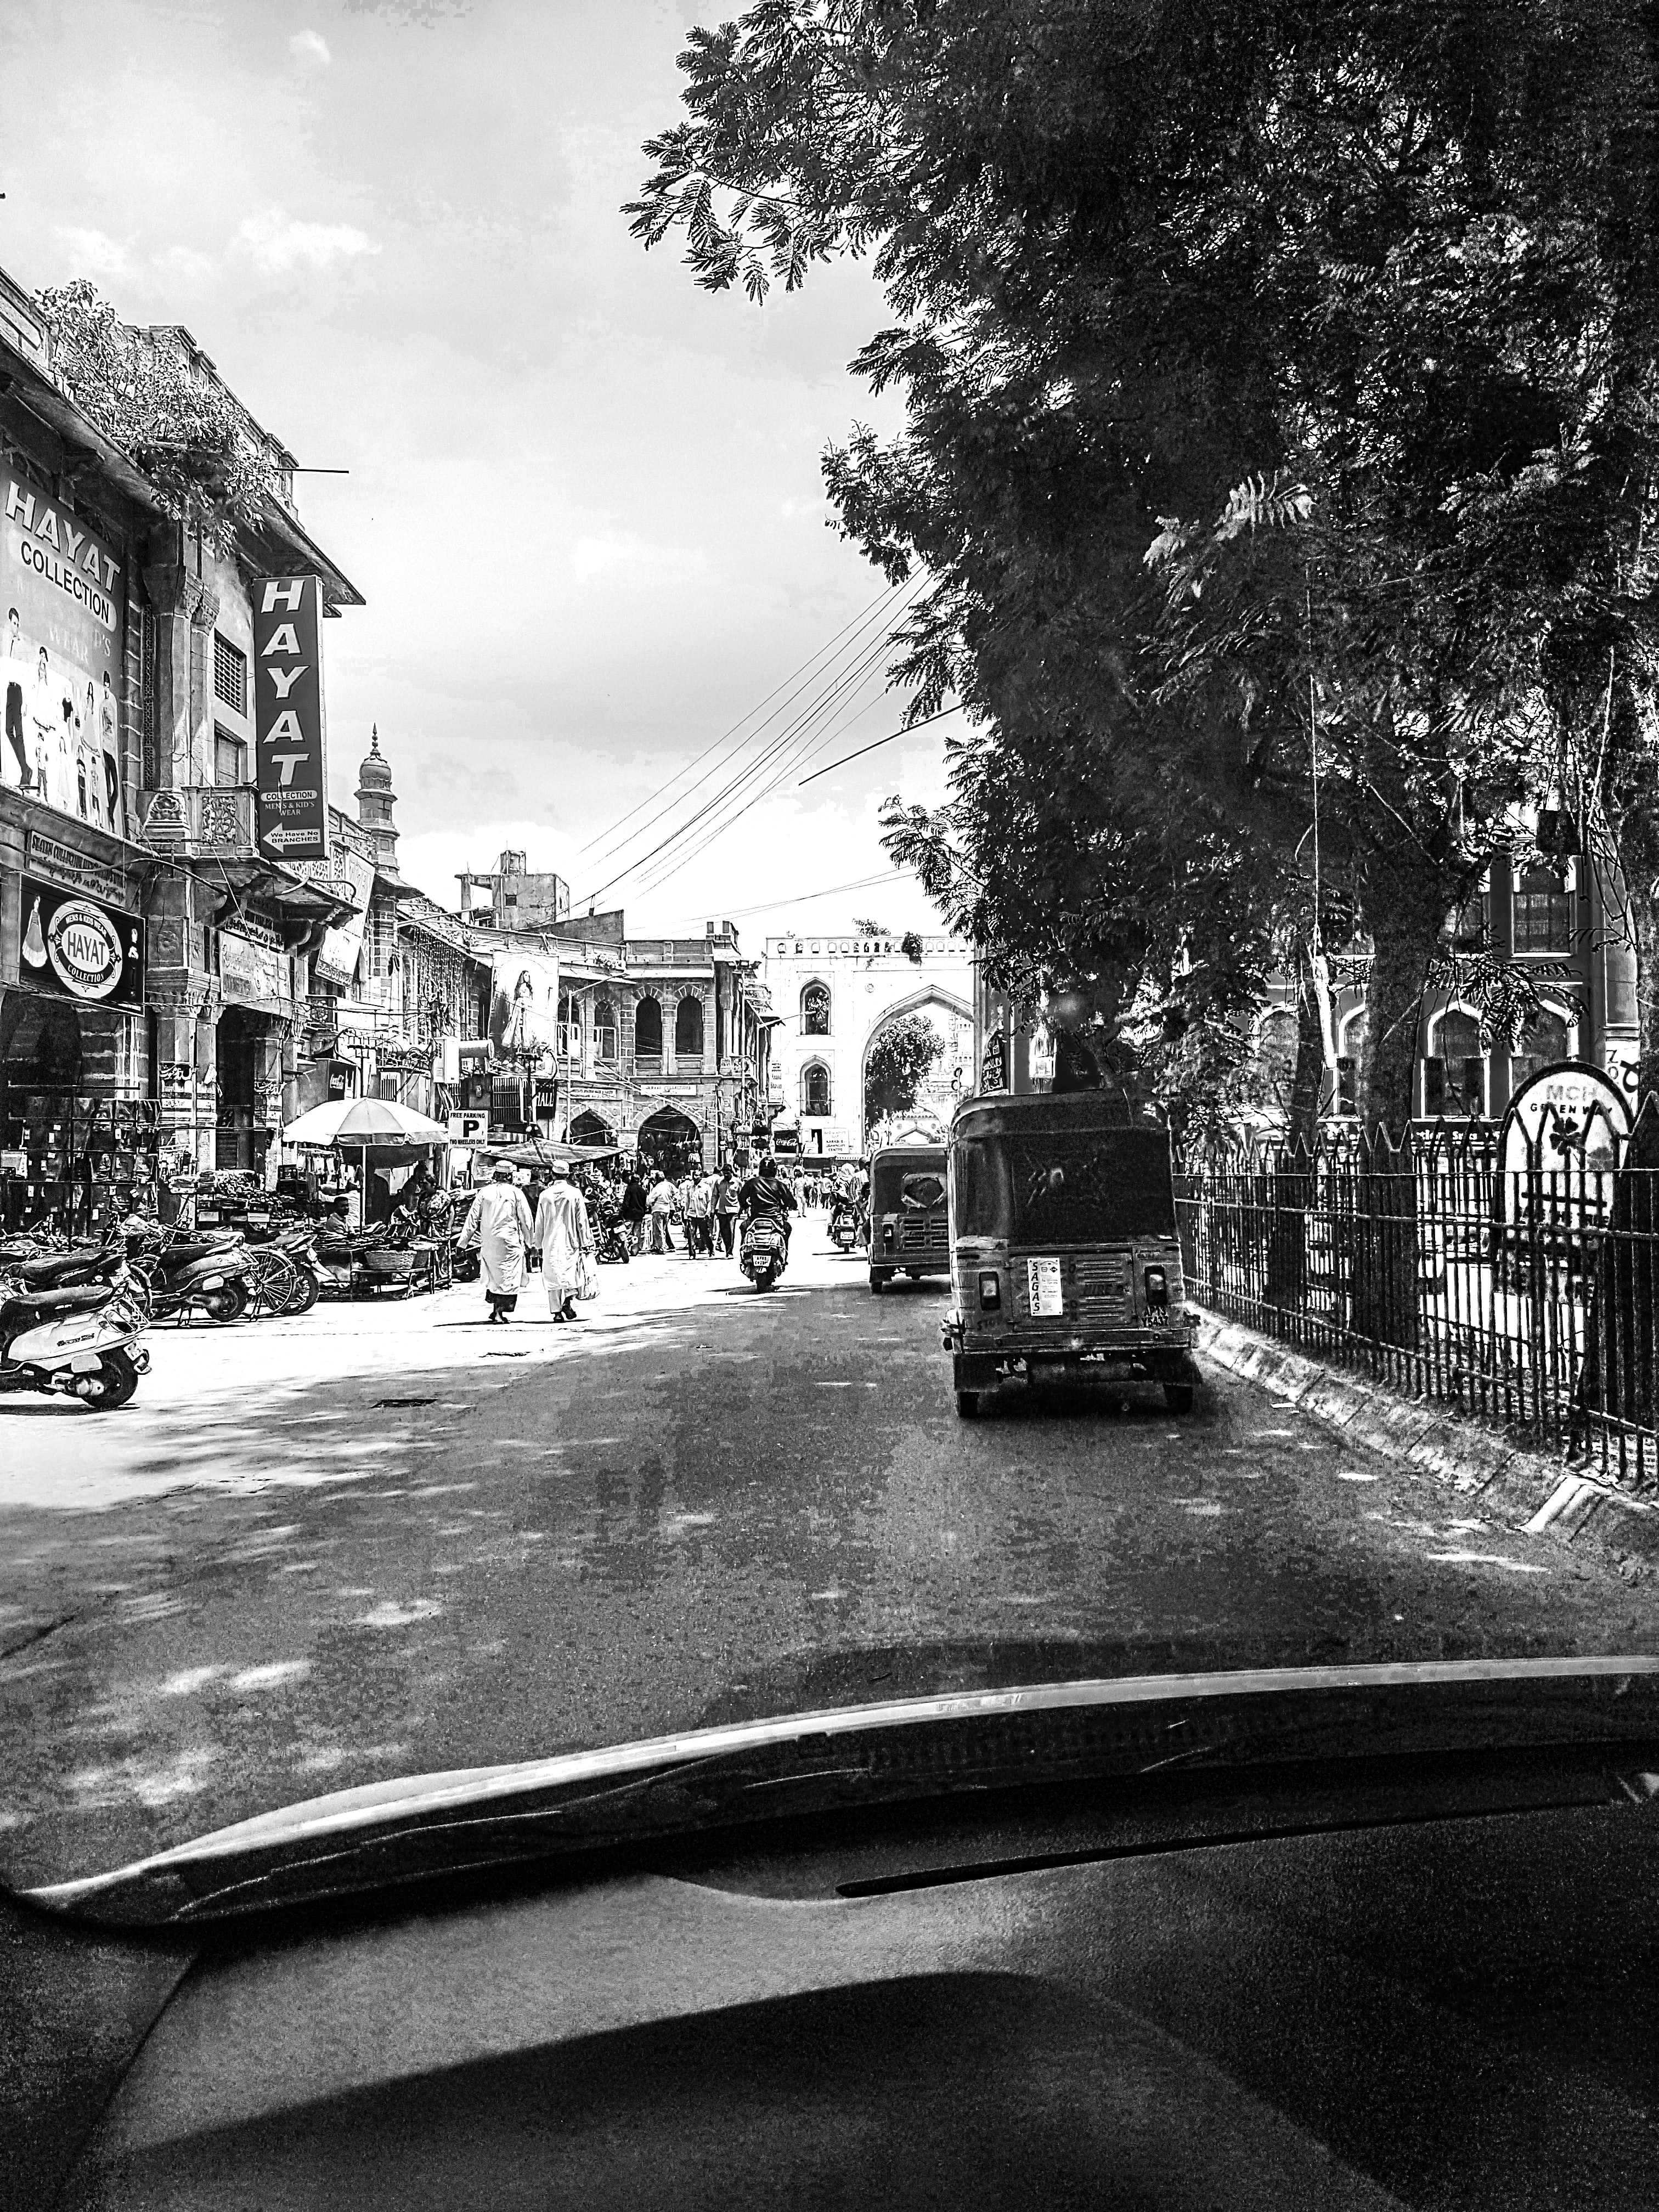 Grayscale Photography of People Walking Near Buildings, Adult, Scooter, Urban, Trees, HQ Photo